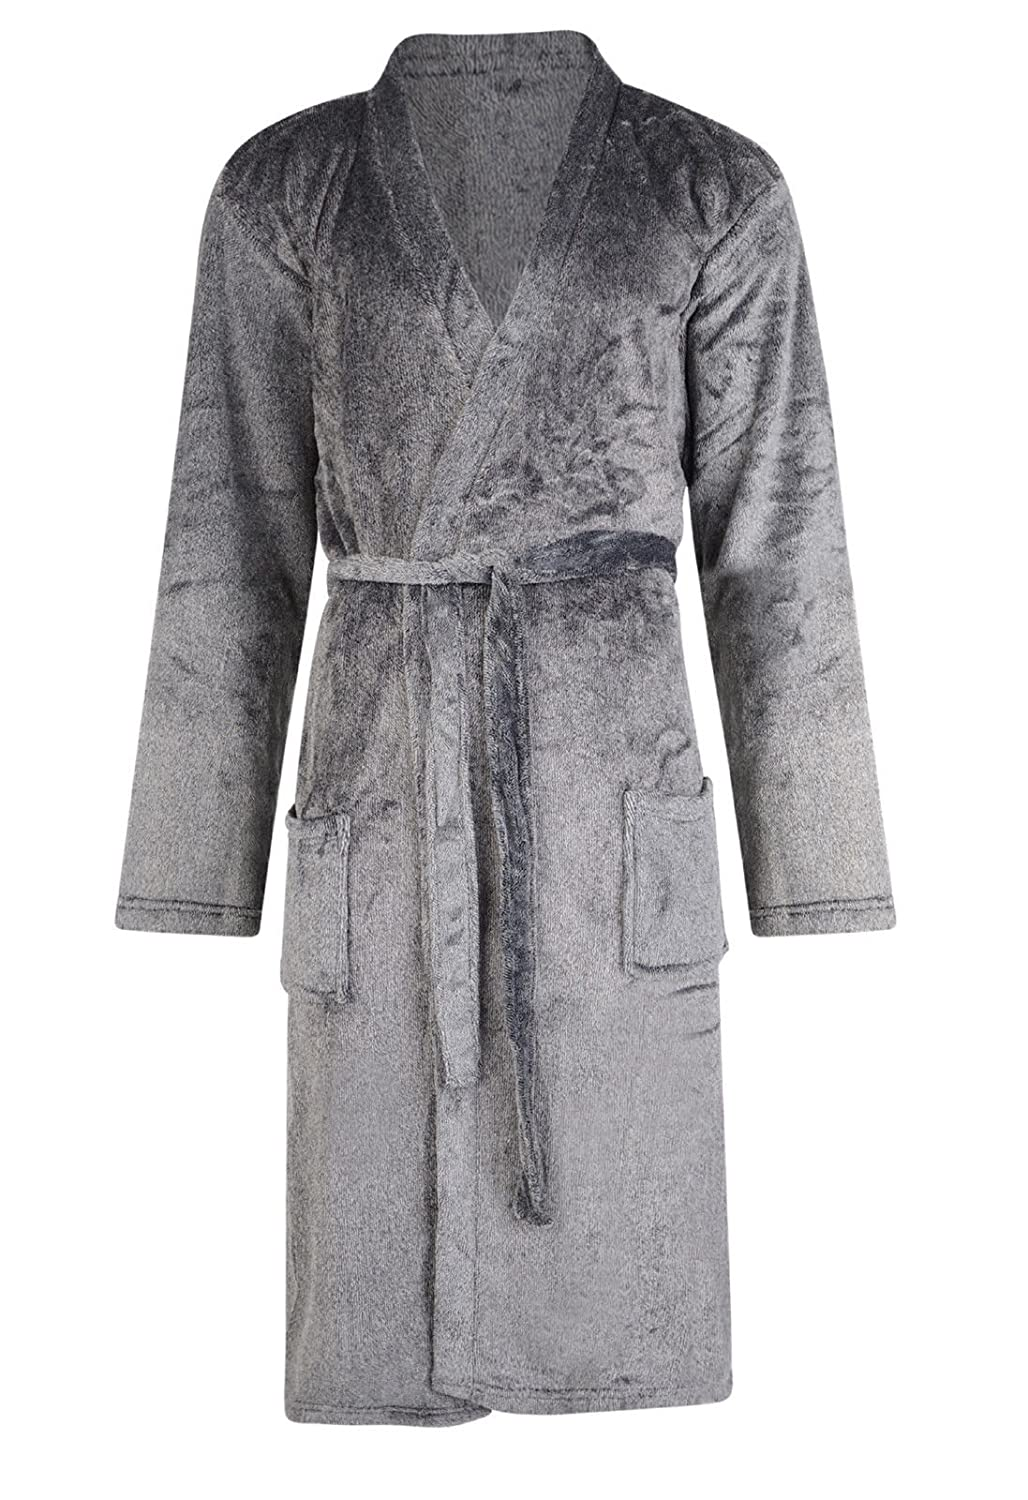 MENS DRESSING GOWN KIMONO BATH ROBE CHARCOAL GREY EX STORE